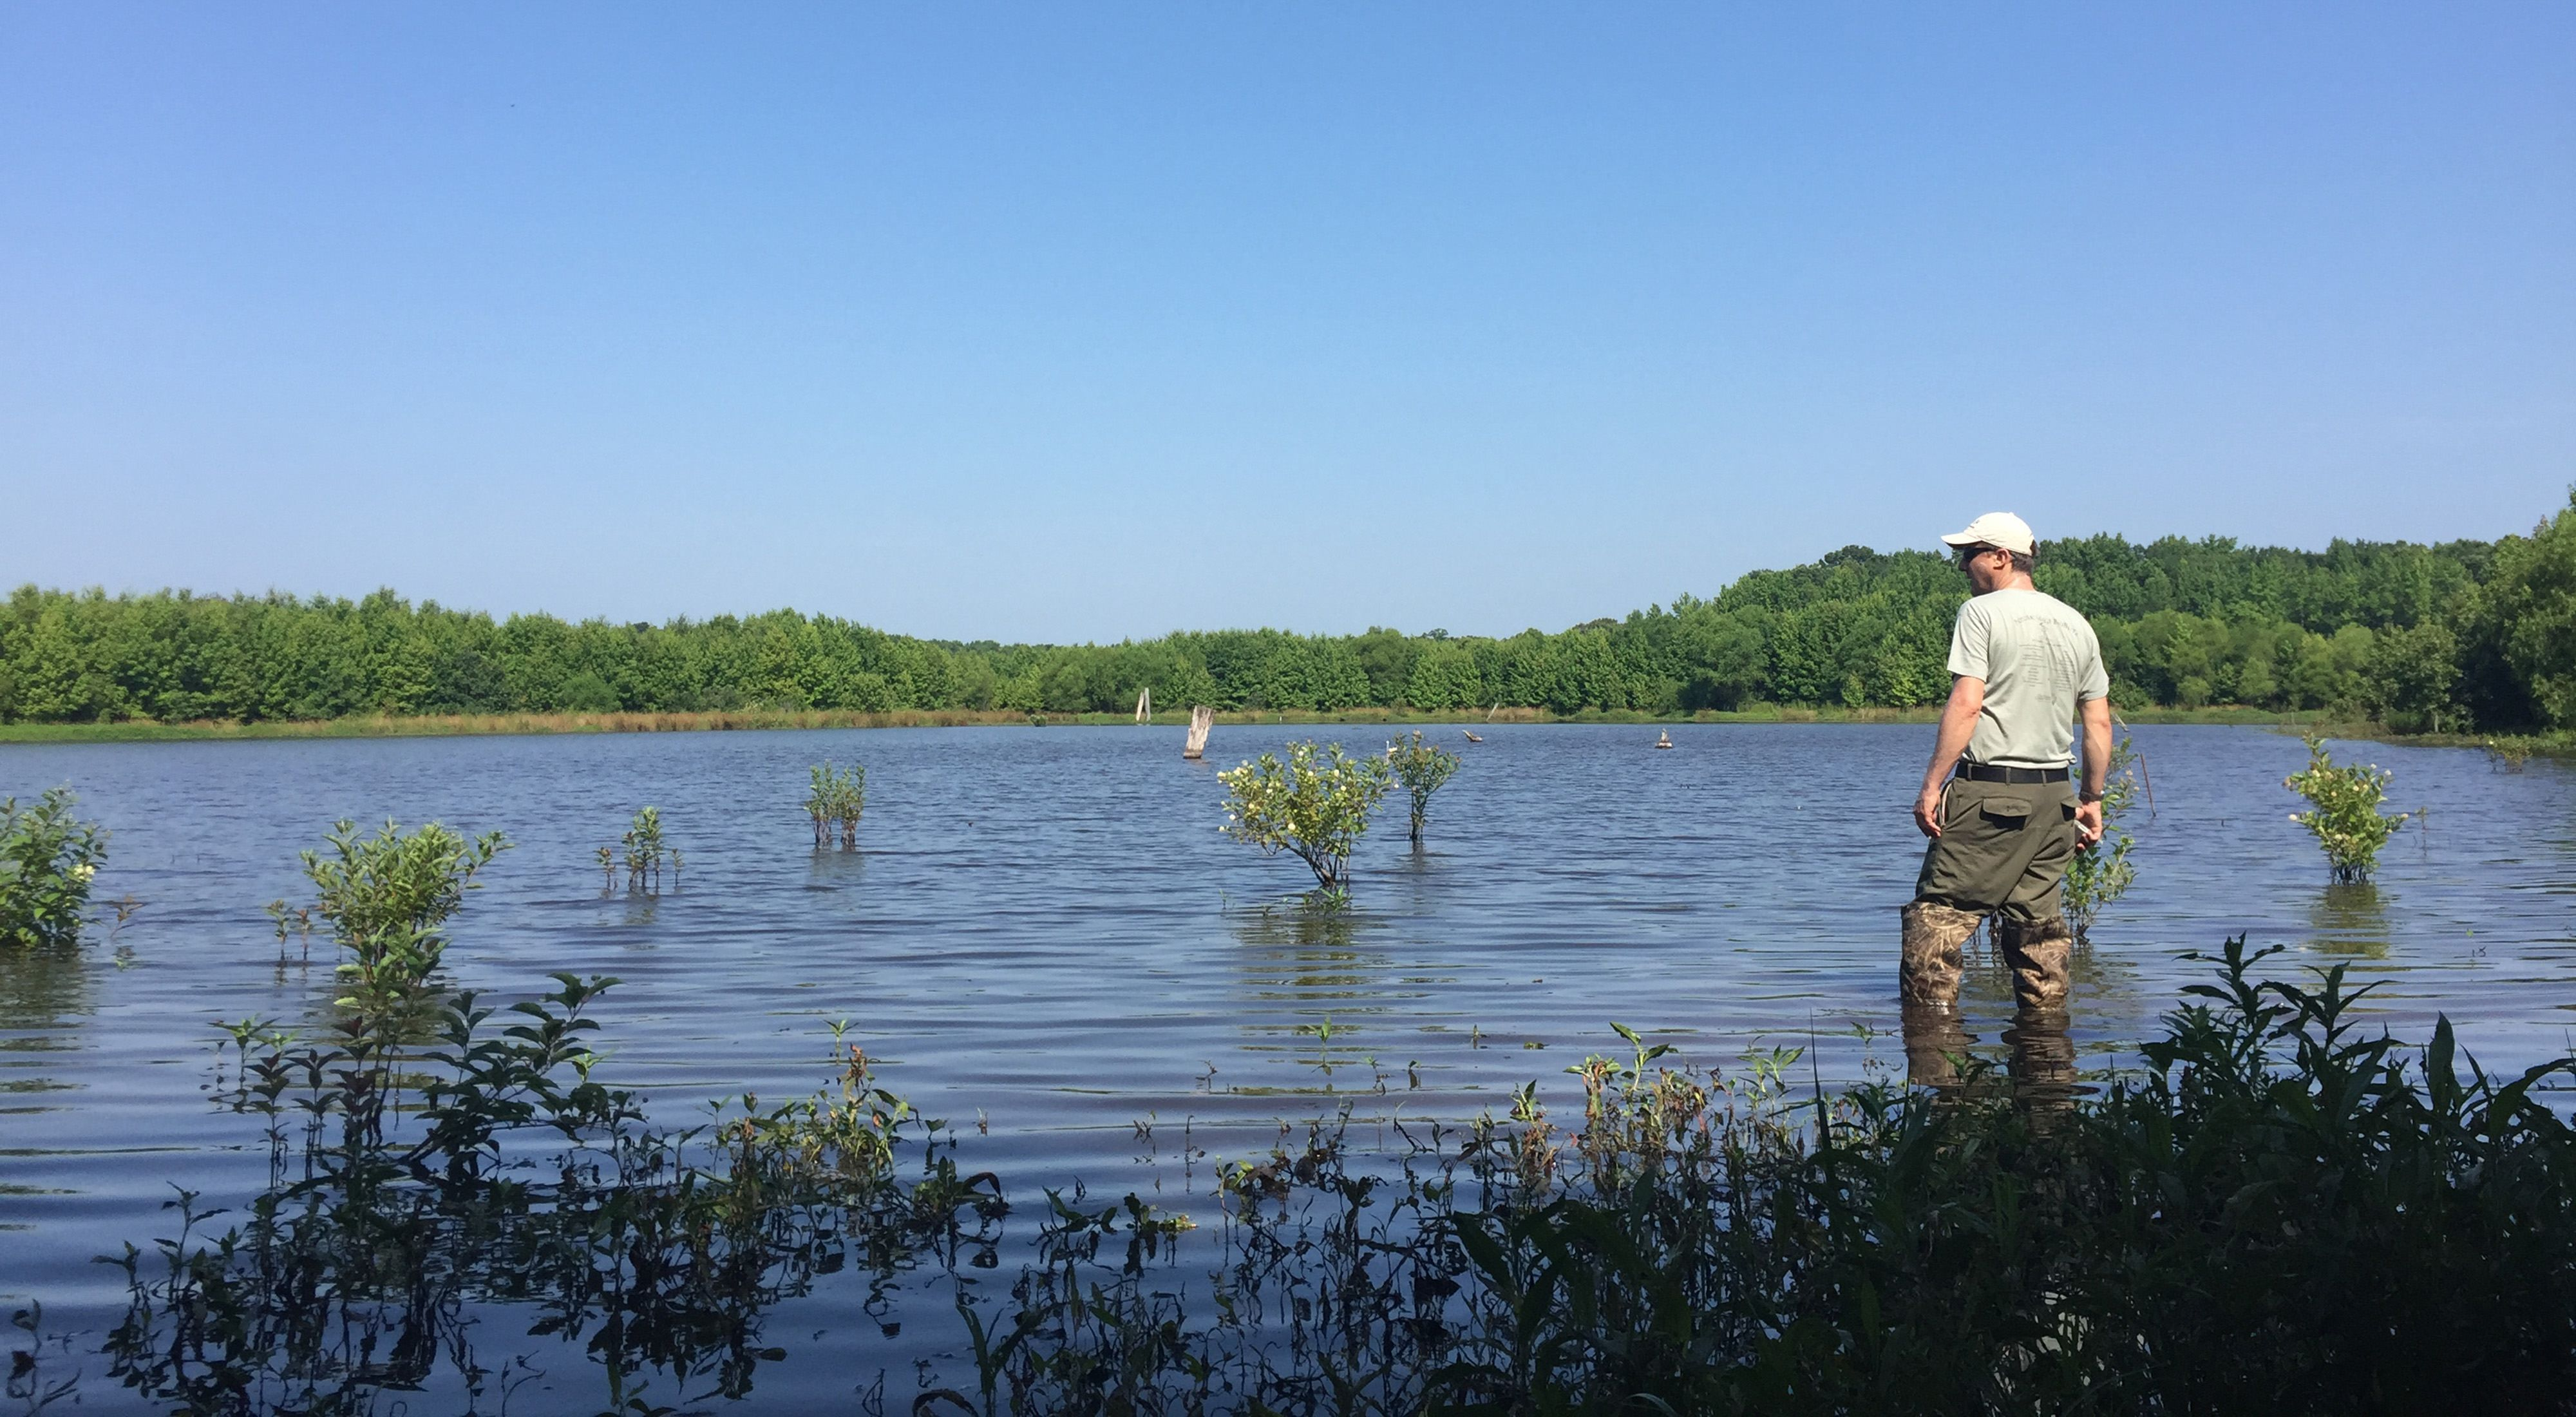 Delmarva bays are seasonally flooded freshwater wetlands that are among Maryland's rarest natural communities.